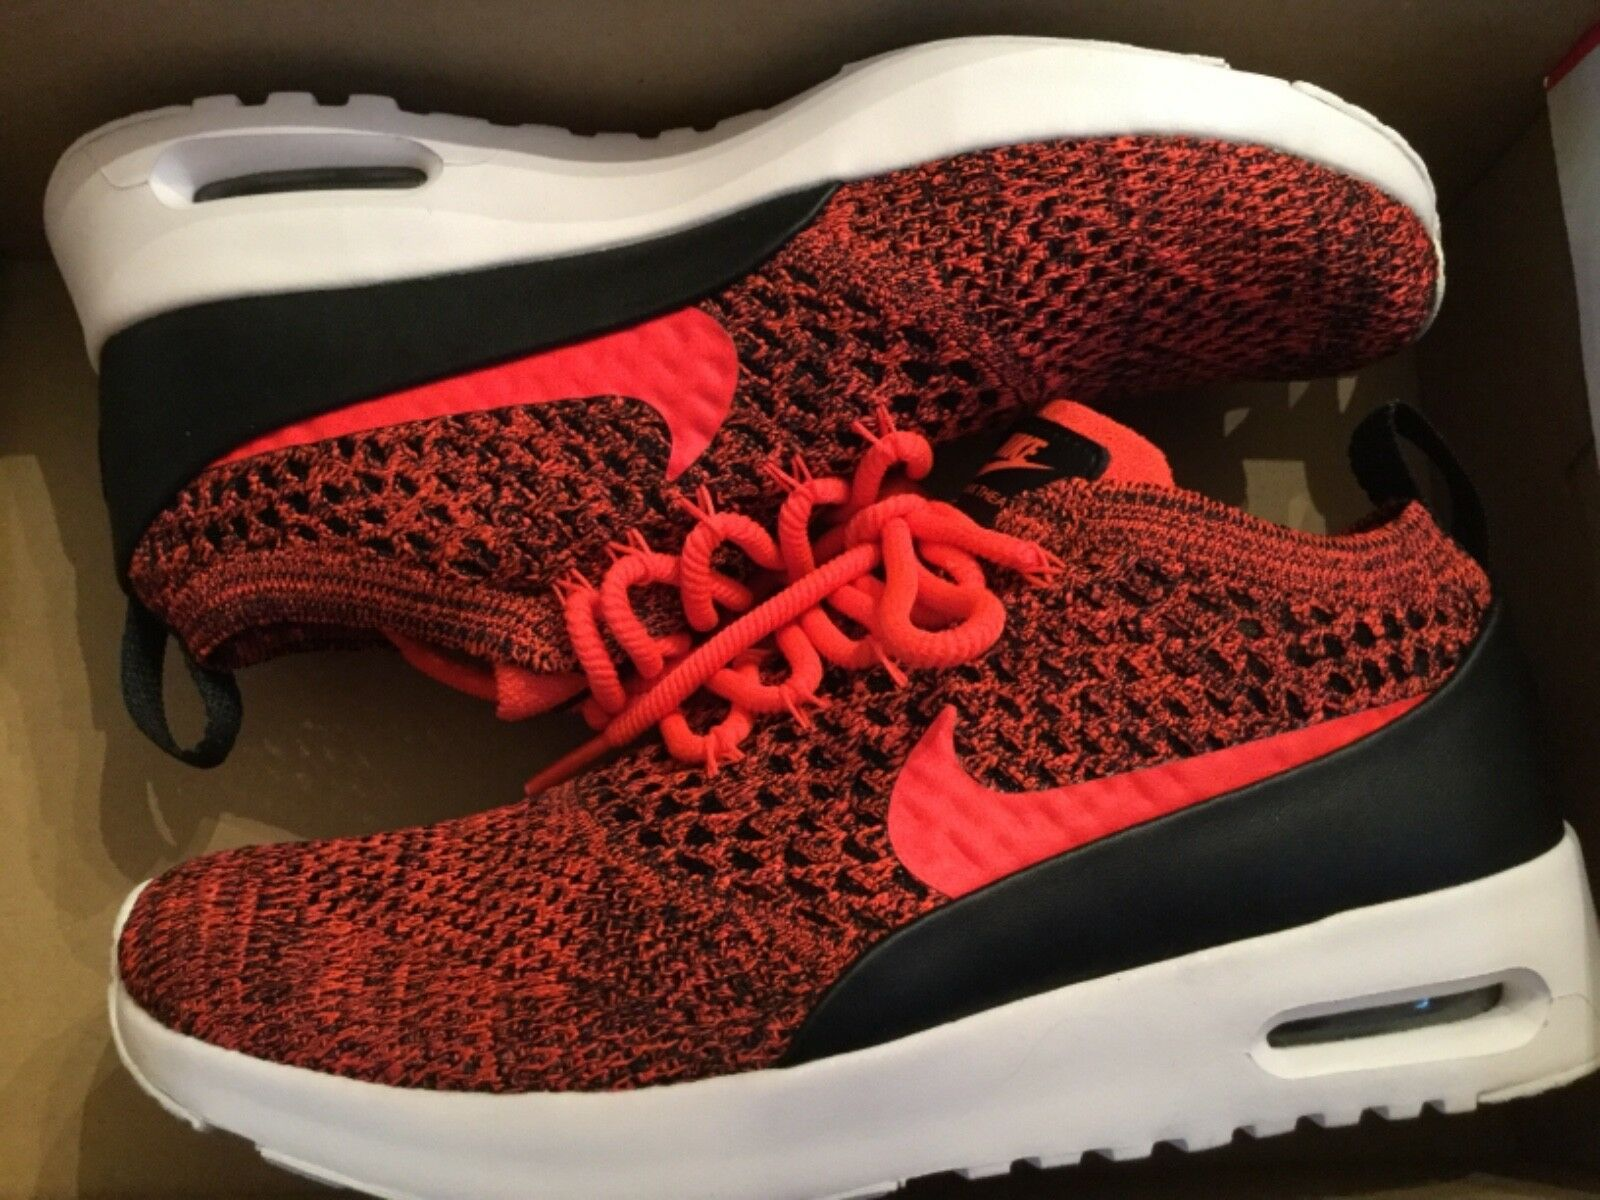 New Womens Nike air max Thea ultra fk Flyknit Running Shoes 881175 602 Sz 5.5